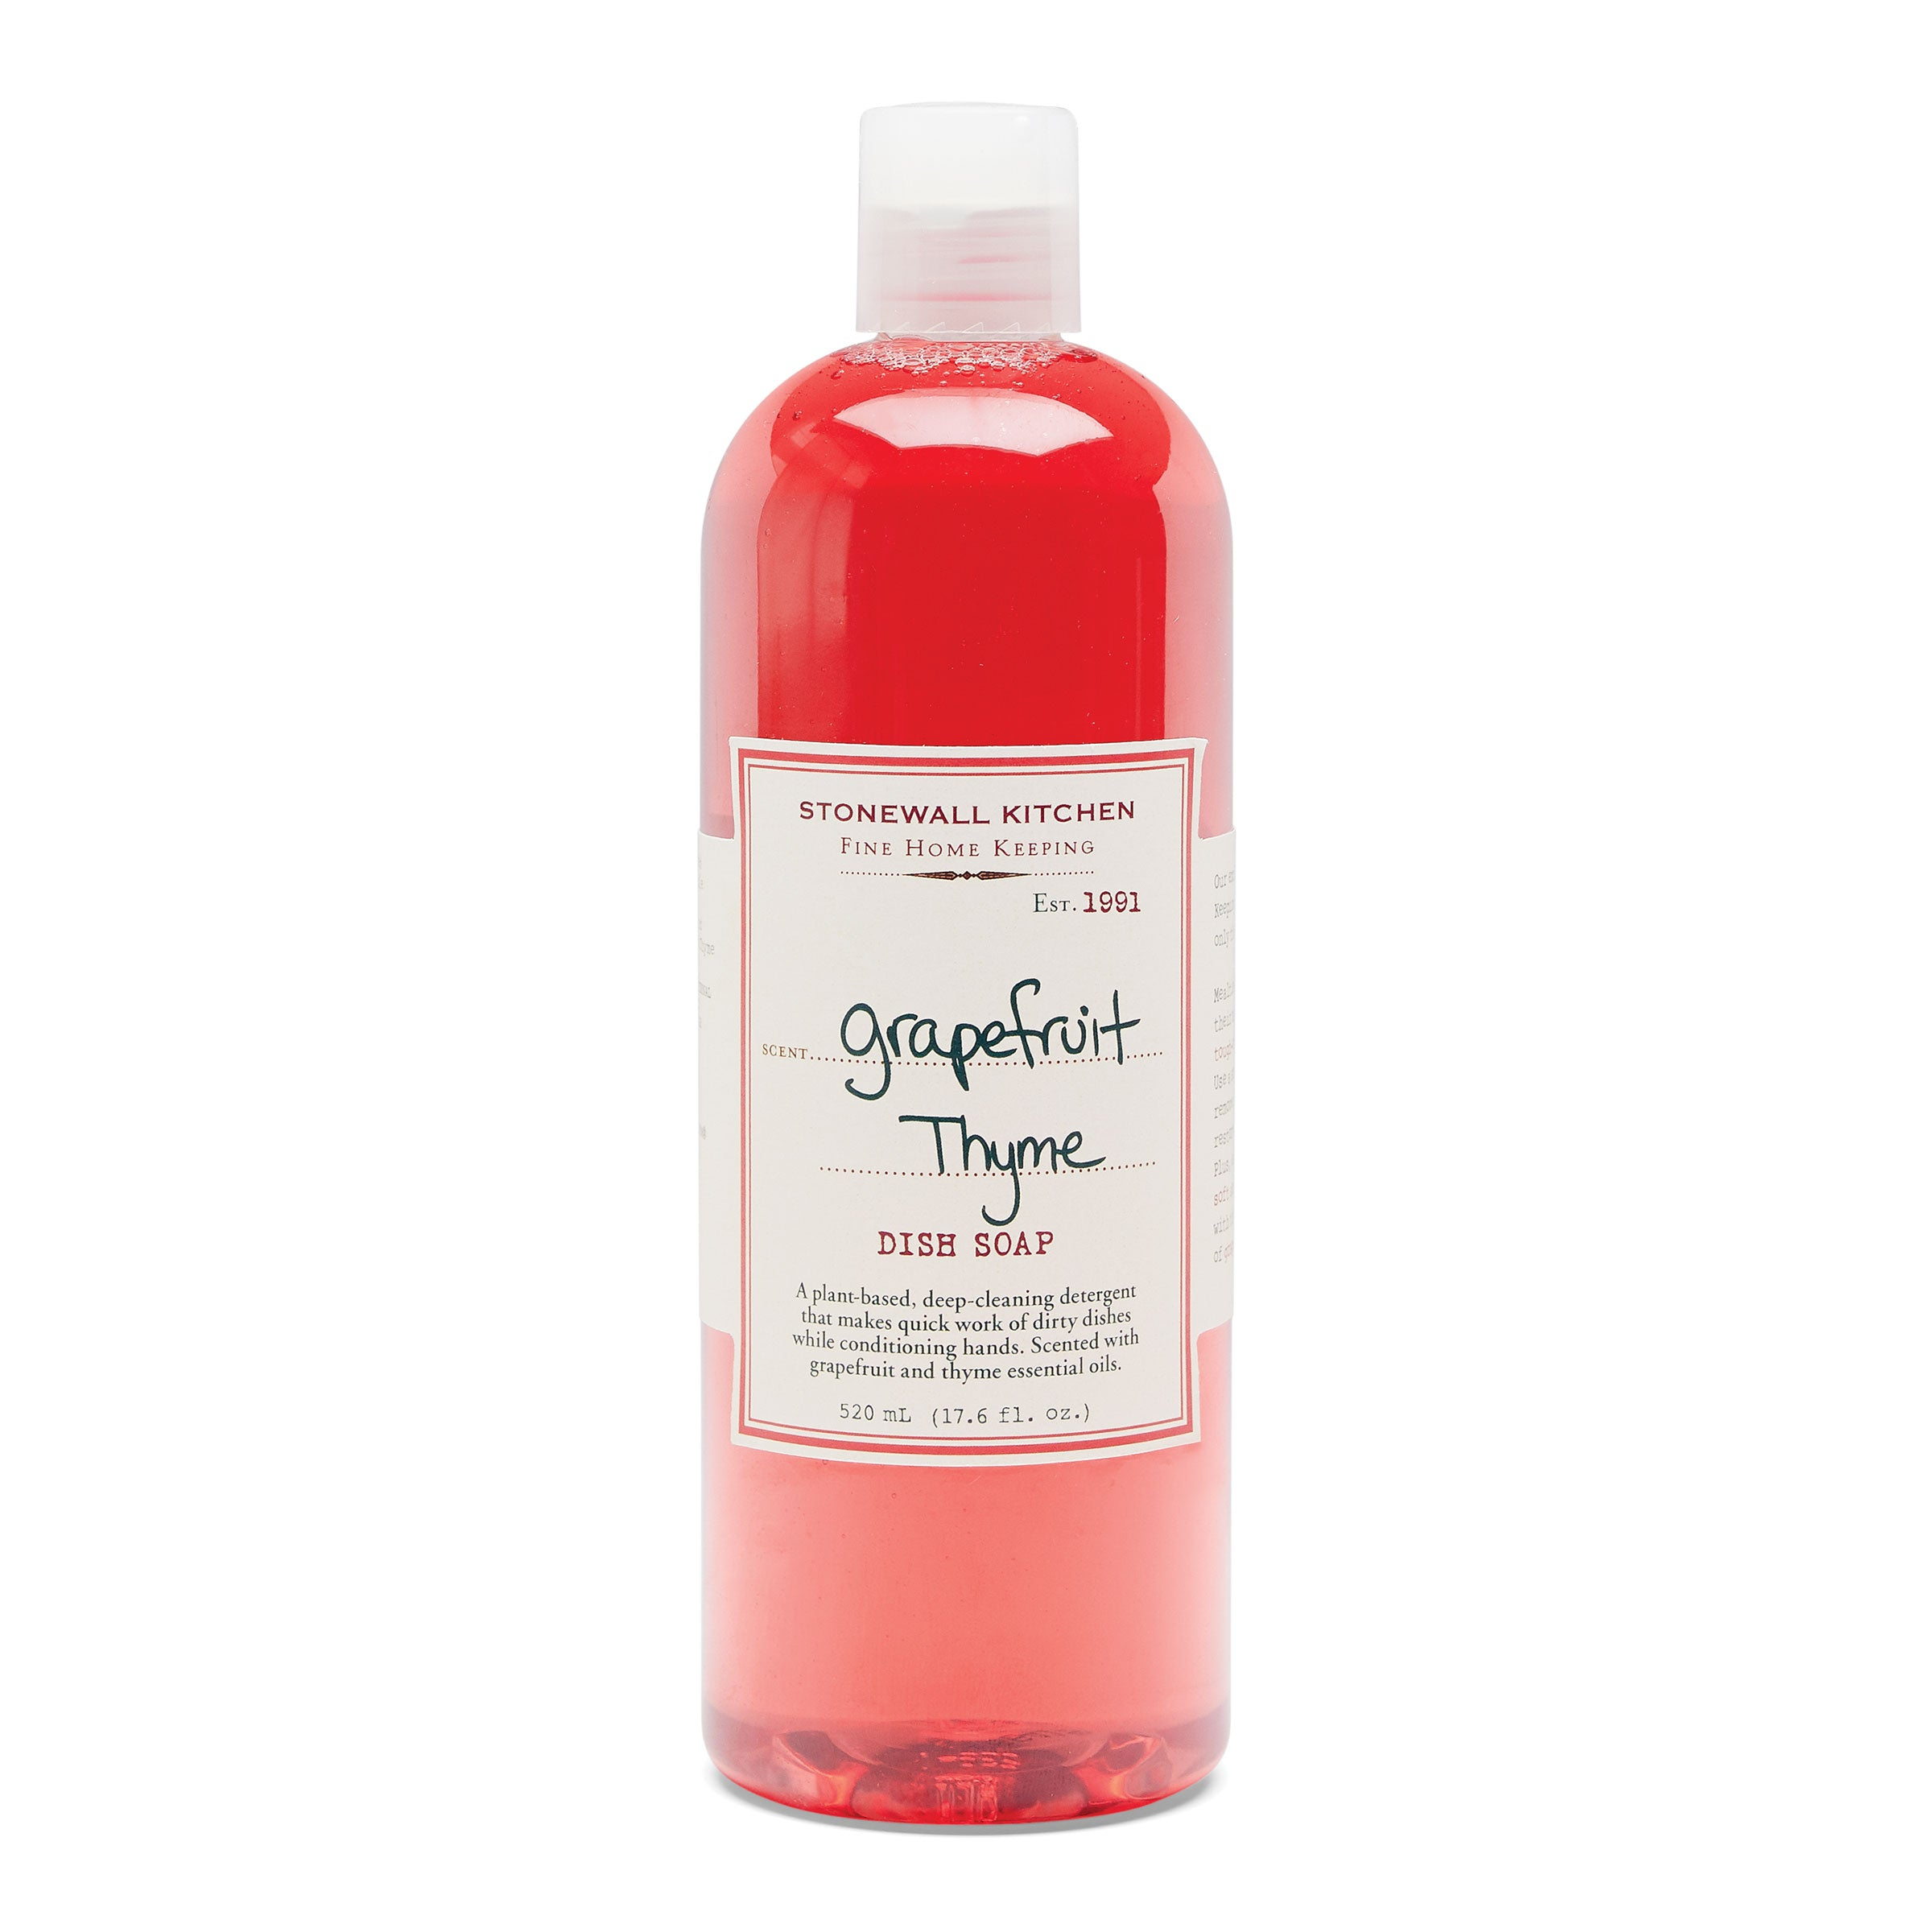 Grapefruit Thyme Dish Soap